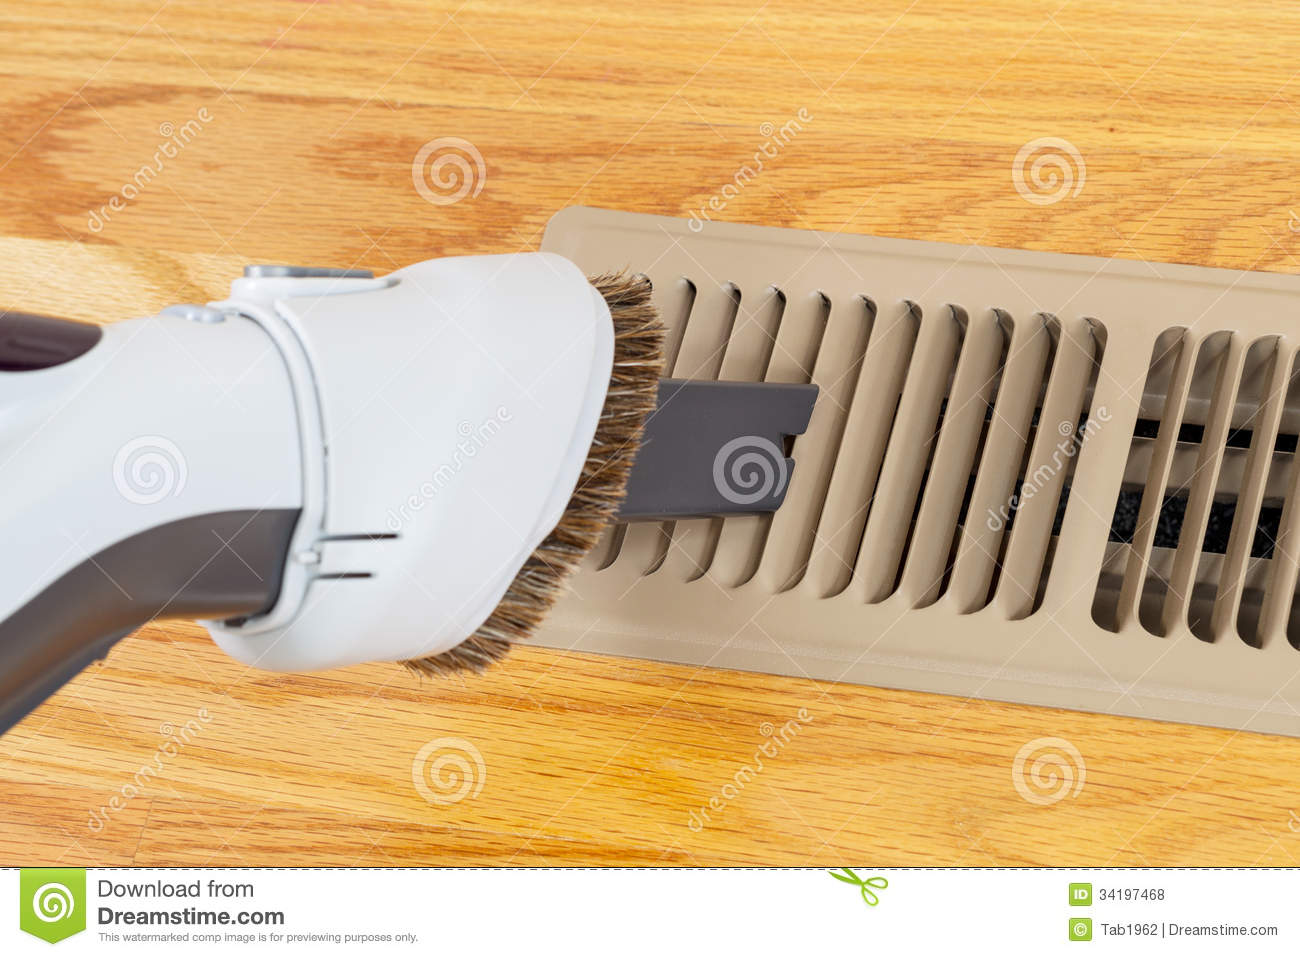 Cleaning heater vent withVacuum